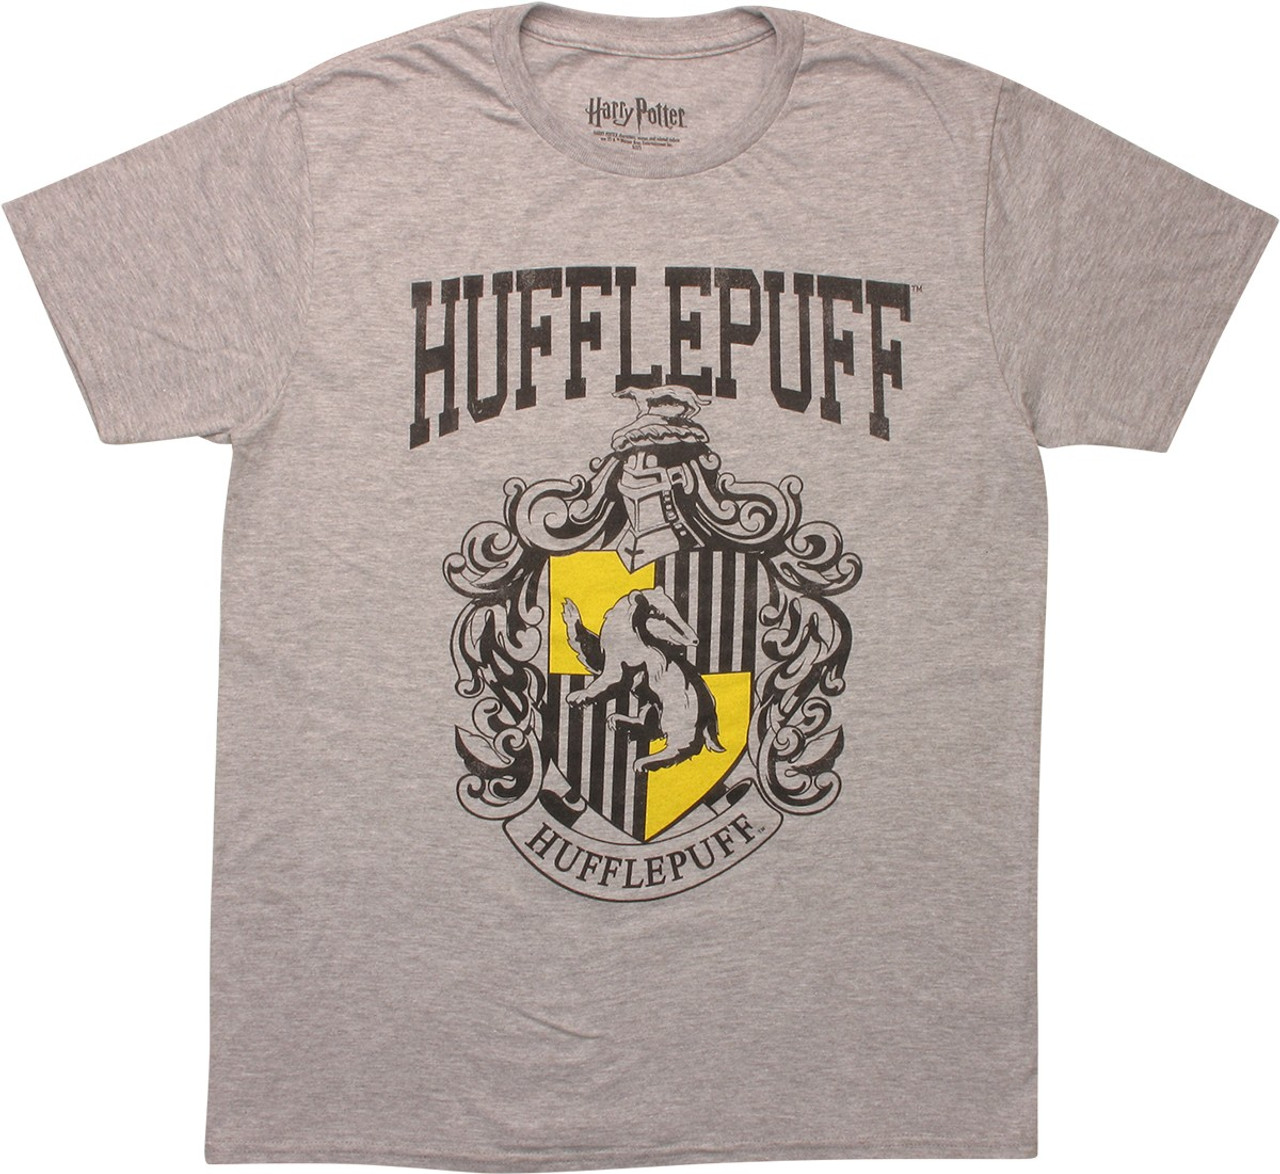 harry potter hufflepuff insignia t shirt. Black Bedroom Furniture Sets. Home Design Ideas